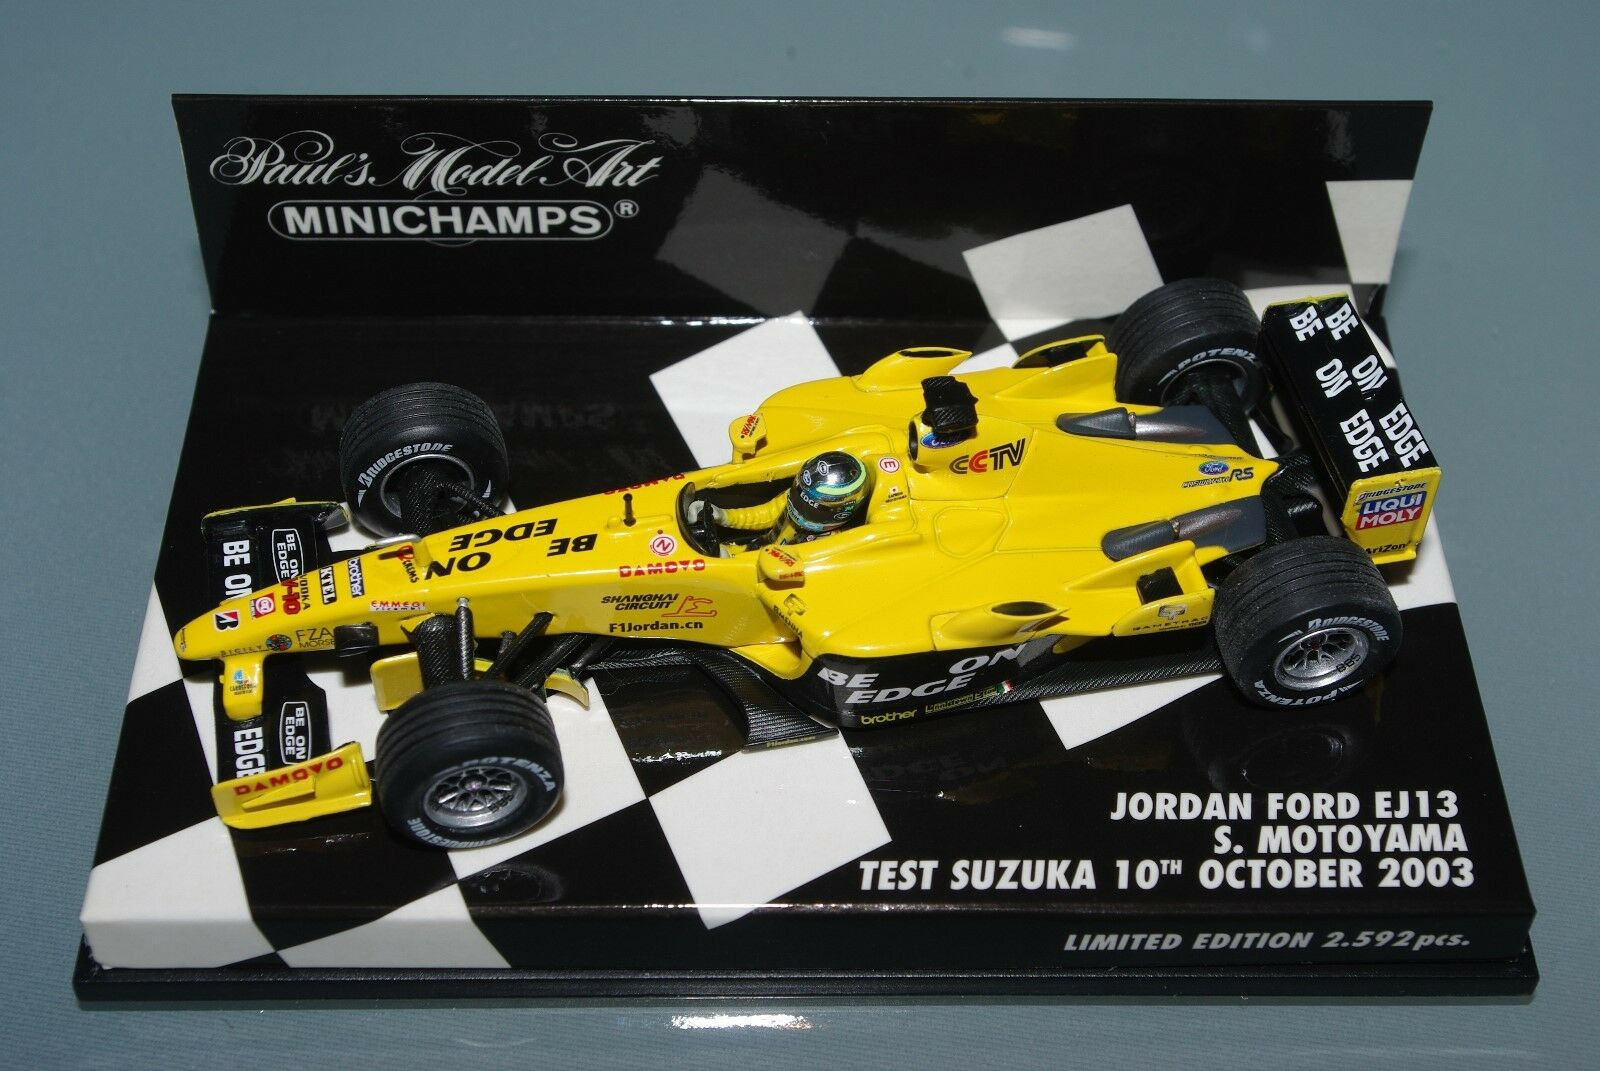 Minichamps F1 1 43 JORDAN FORD EJ13-MOTO-test Suzuka 2003-Ltd. Ed. 2592